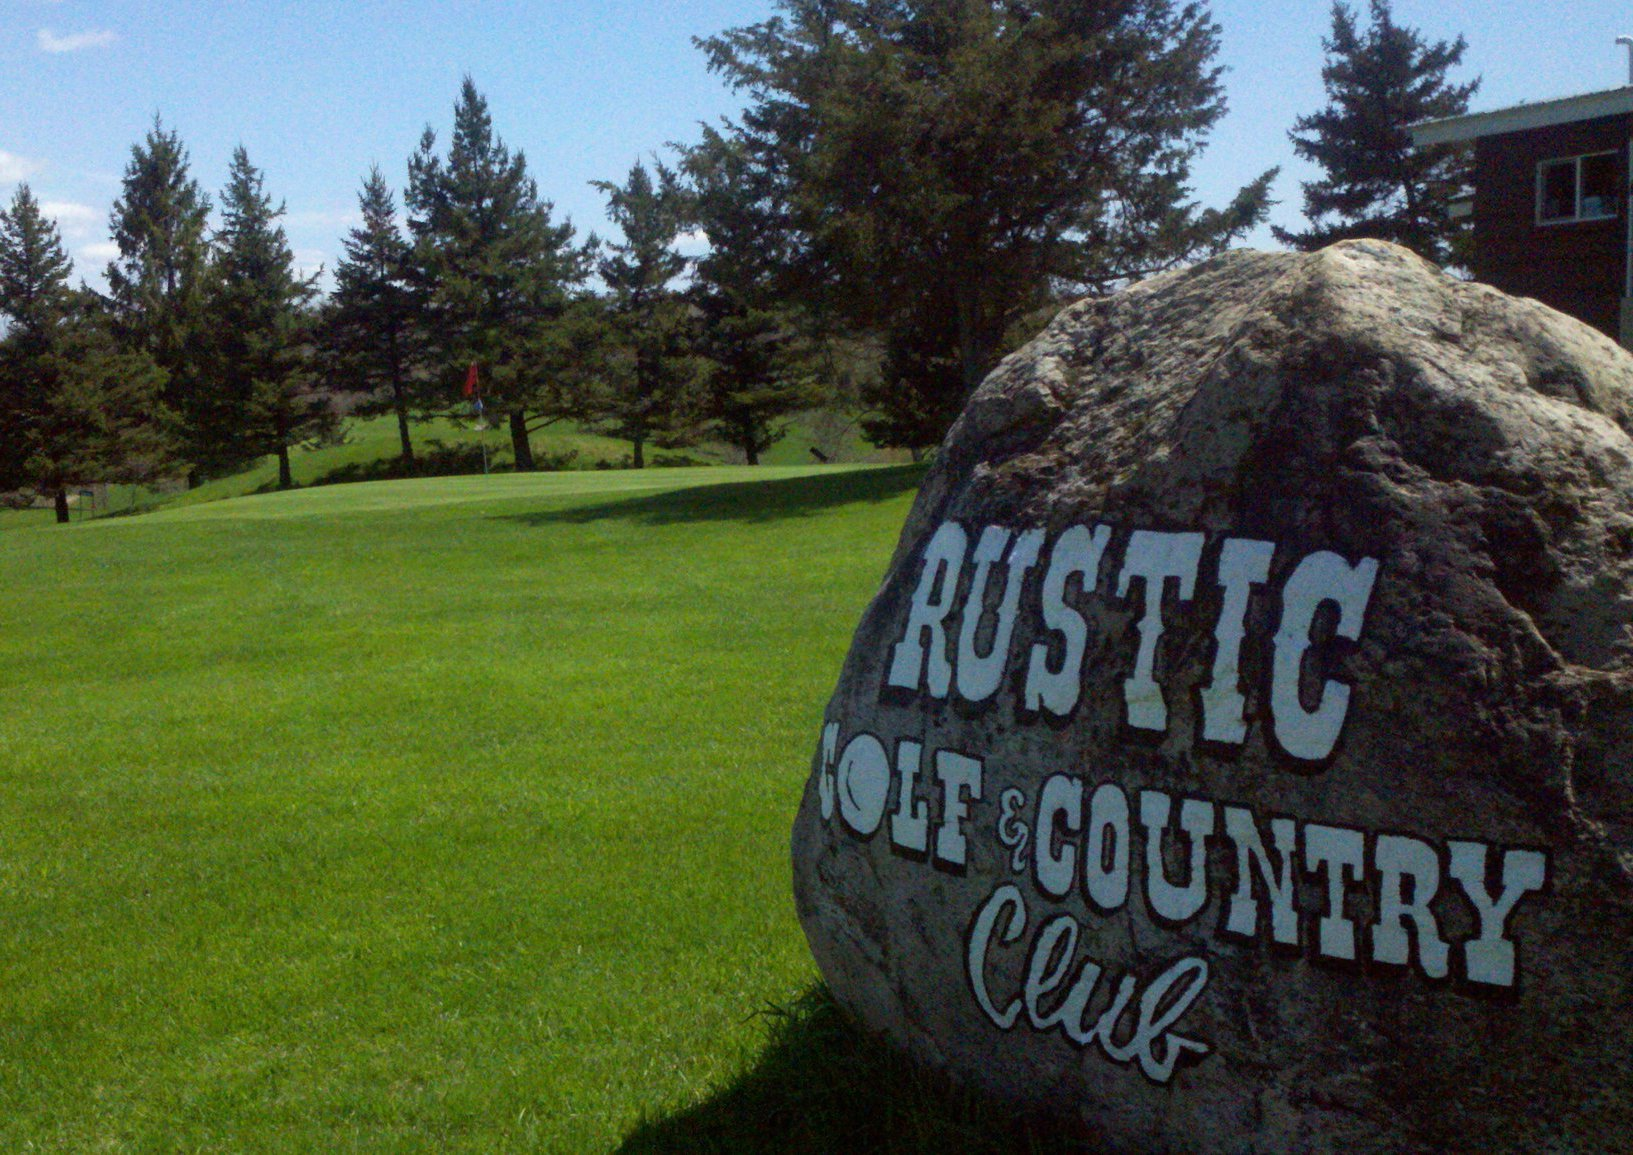 Rustic Golf & Country Club